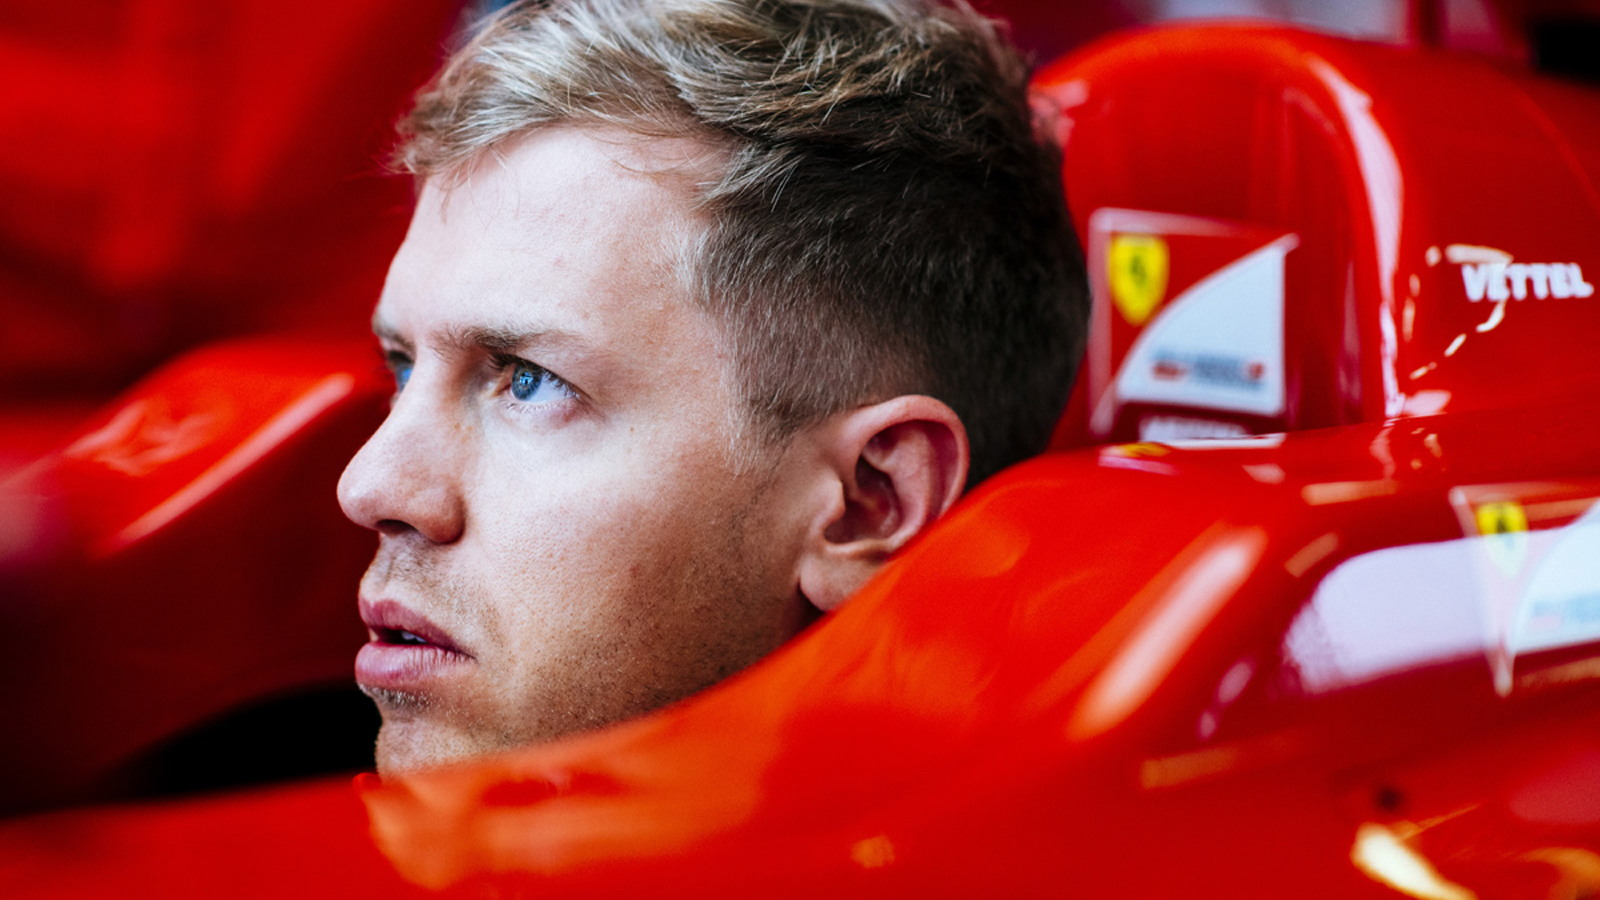 Sebastian Vettel's first days at Ferrari